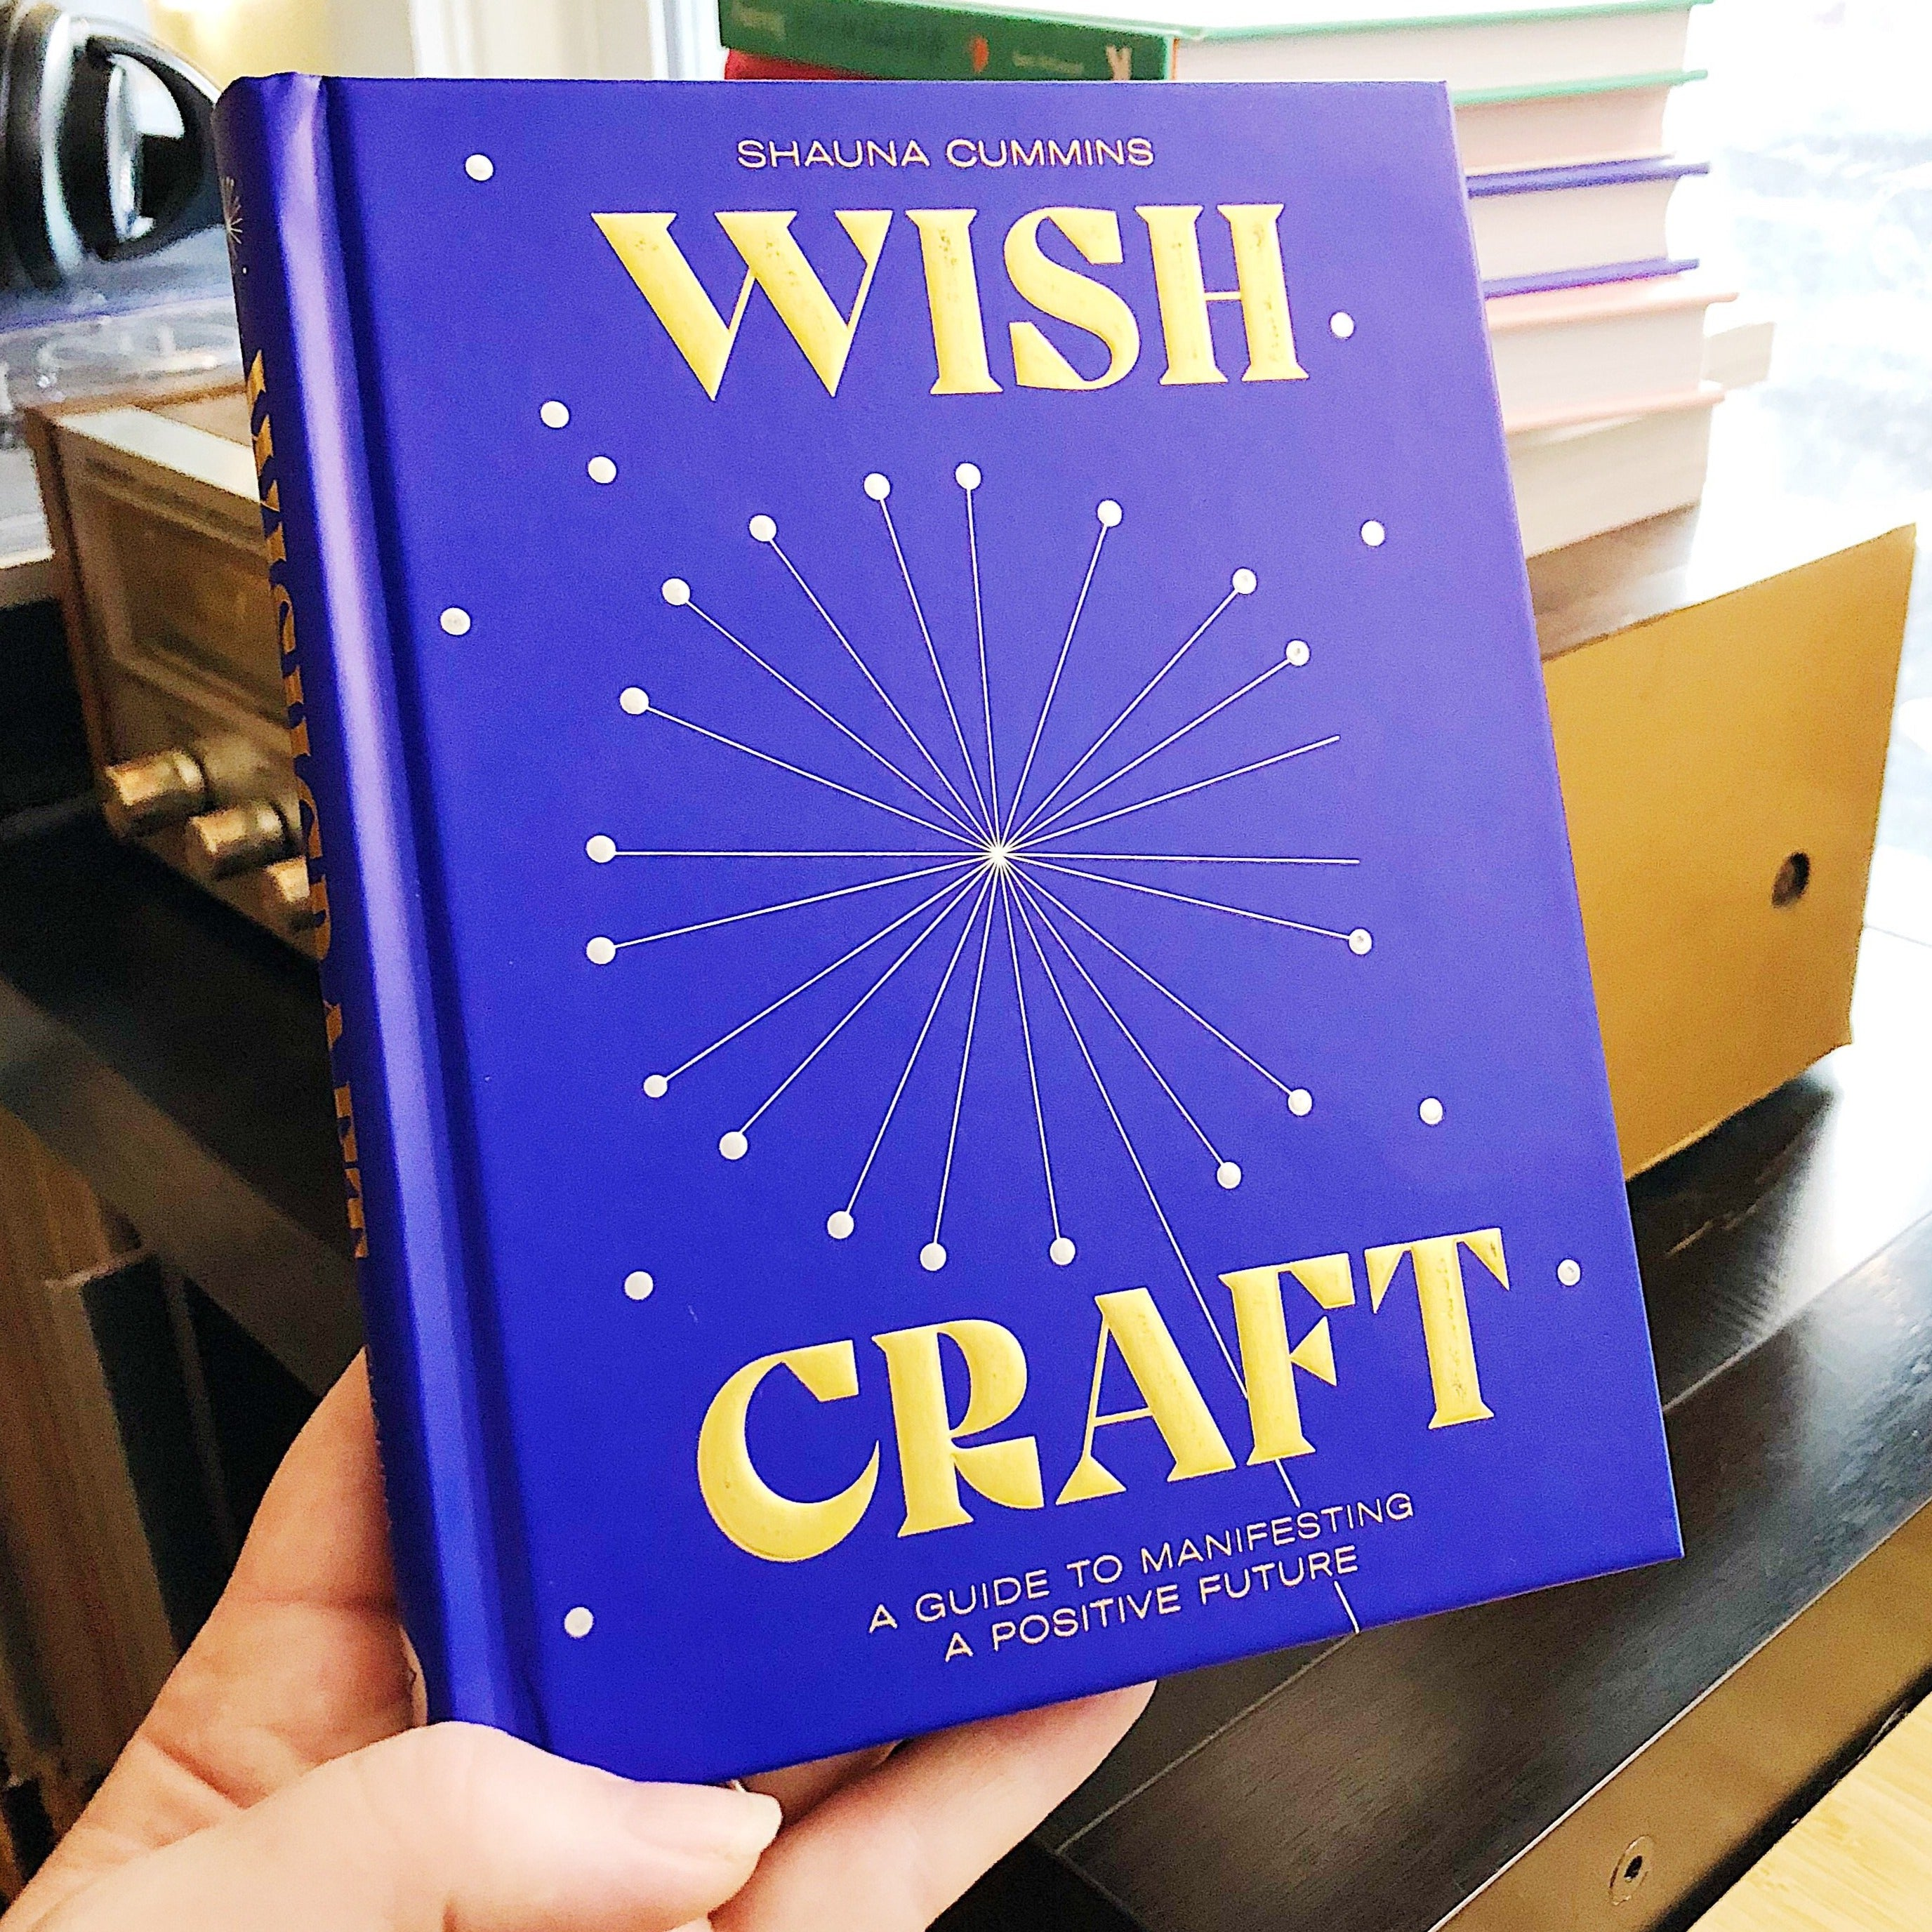 WishCraft: A guide to manifesting a positive future // By Shauna Cummins